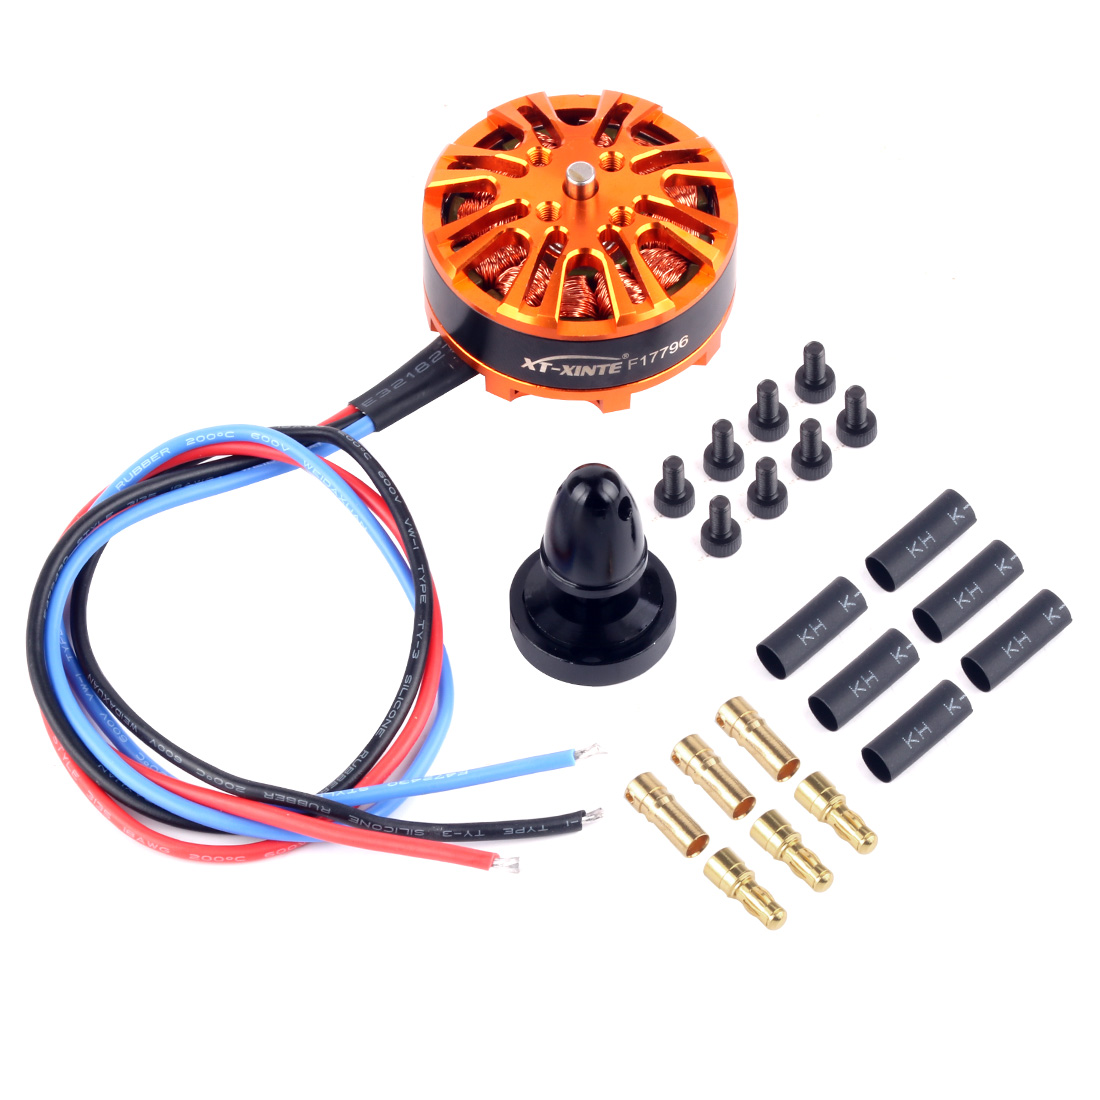 XT-XINTE HYD 3508 700KV 198W Disc Motor For Drone  Aircraft Multirotor Quadcopter F17796